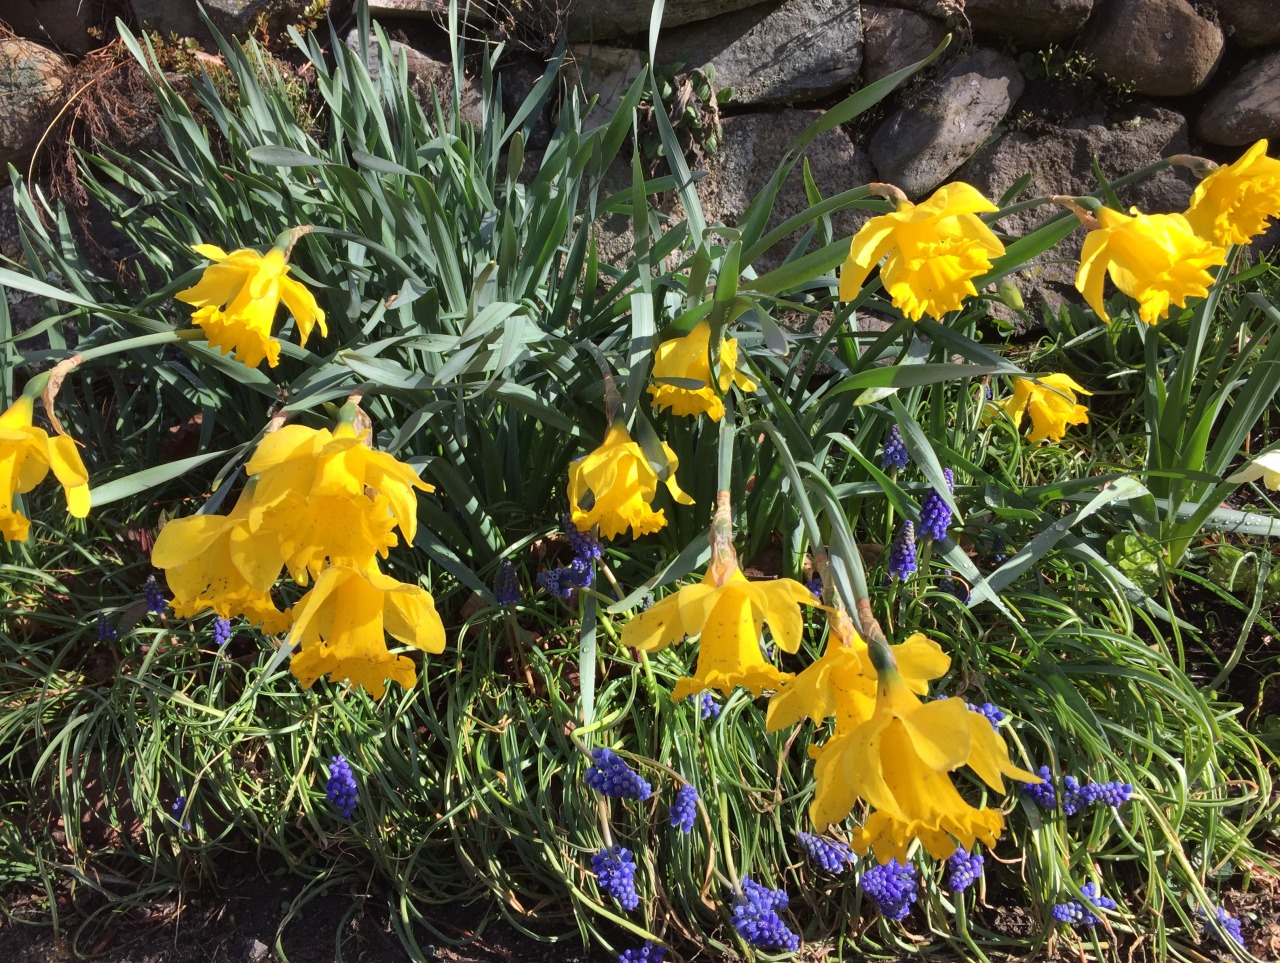 Daffodils   April showers hang around To see if they can drown the ground. Resourcefully the garden copes By raising yellow periscopes.  –D. A. W.   Daffodils nodding from the rain in Ipswich, Massachusetts